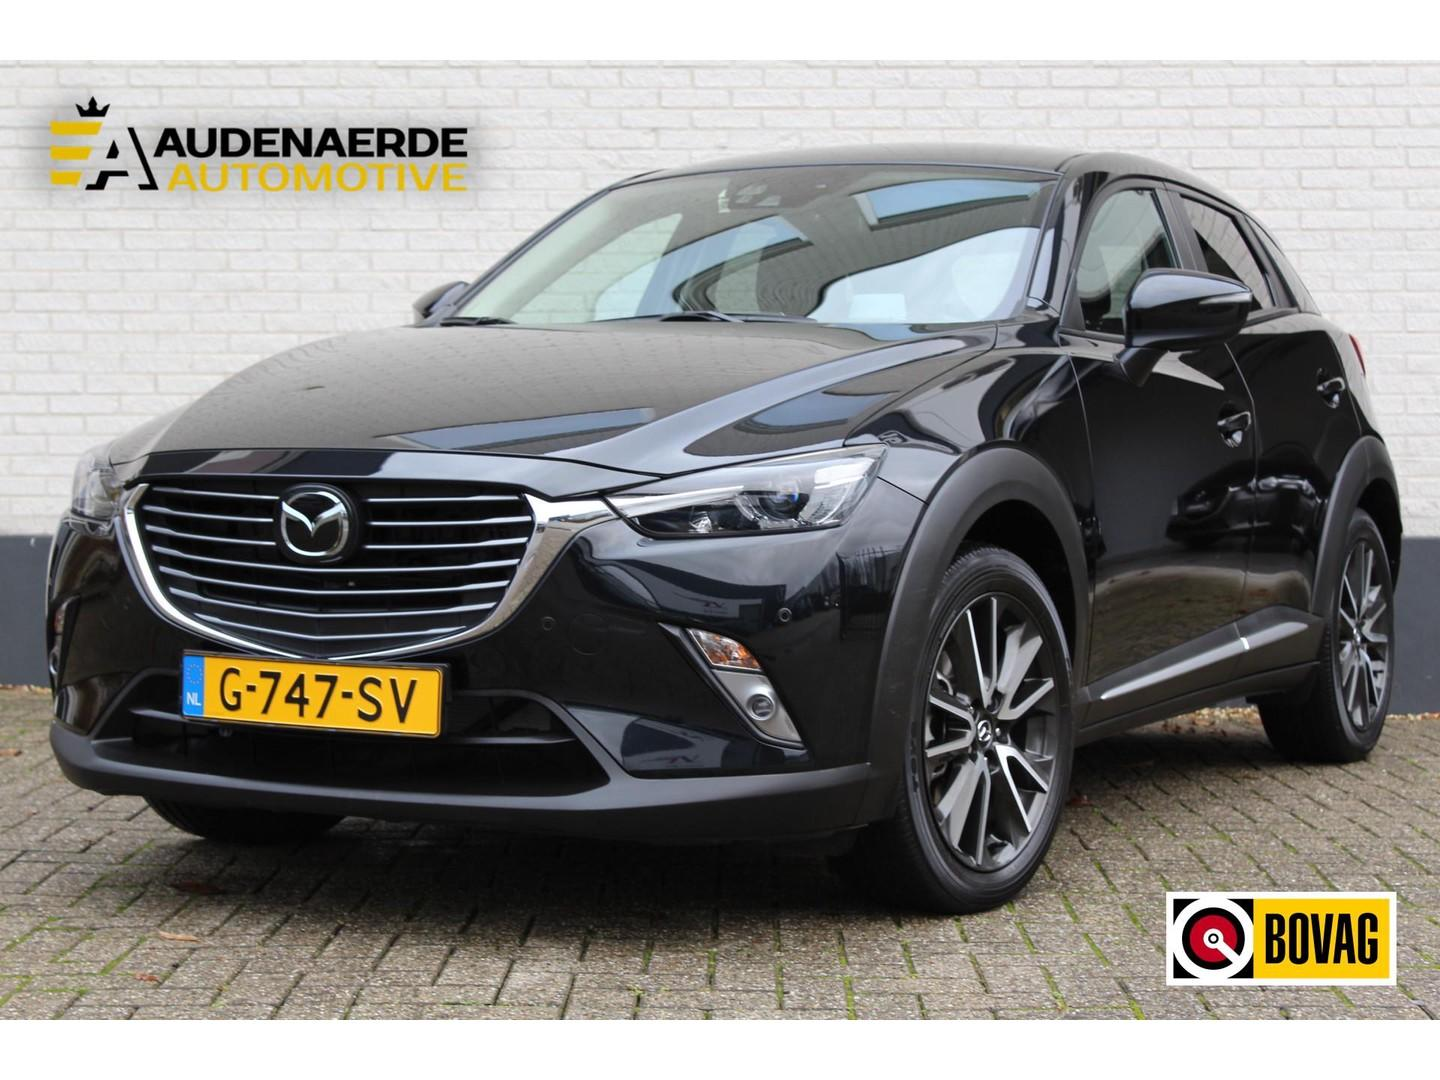 Mazda Cx-3 2.0 skyactiv-g 150 gt-m 4wd automaat